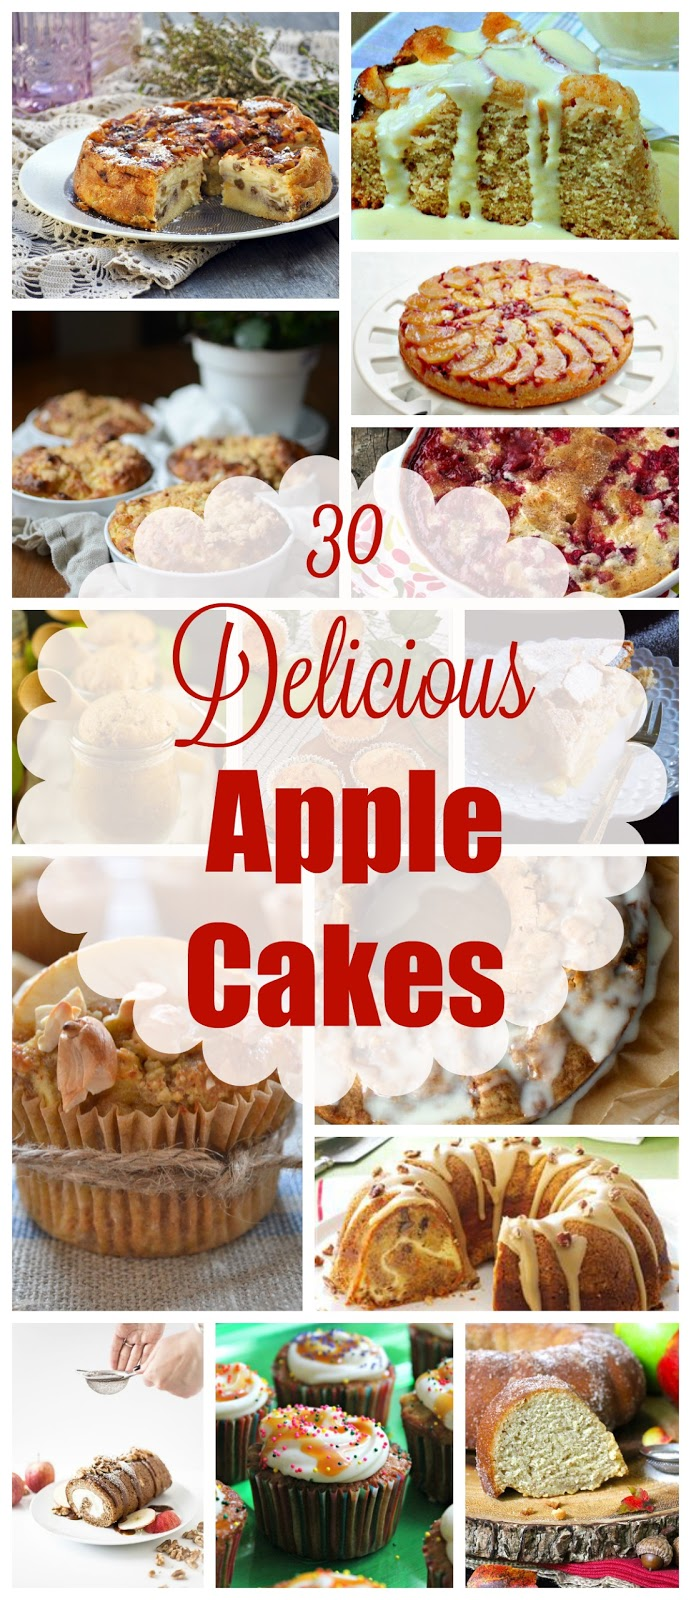 30 Delicious Apple Cakes for Every Occasion